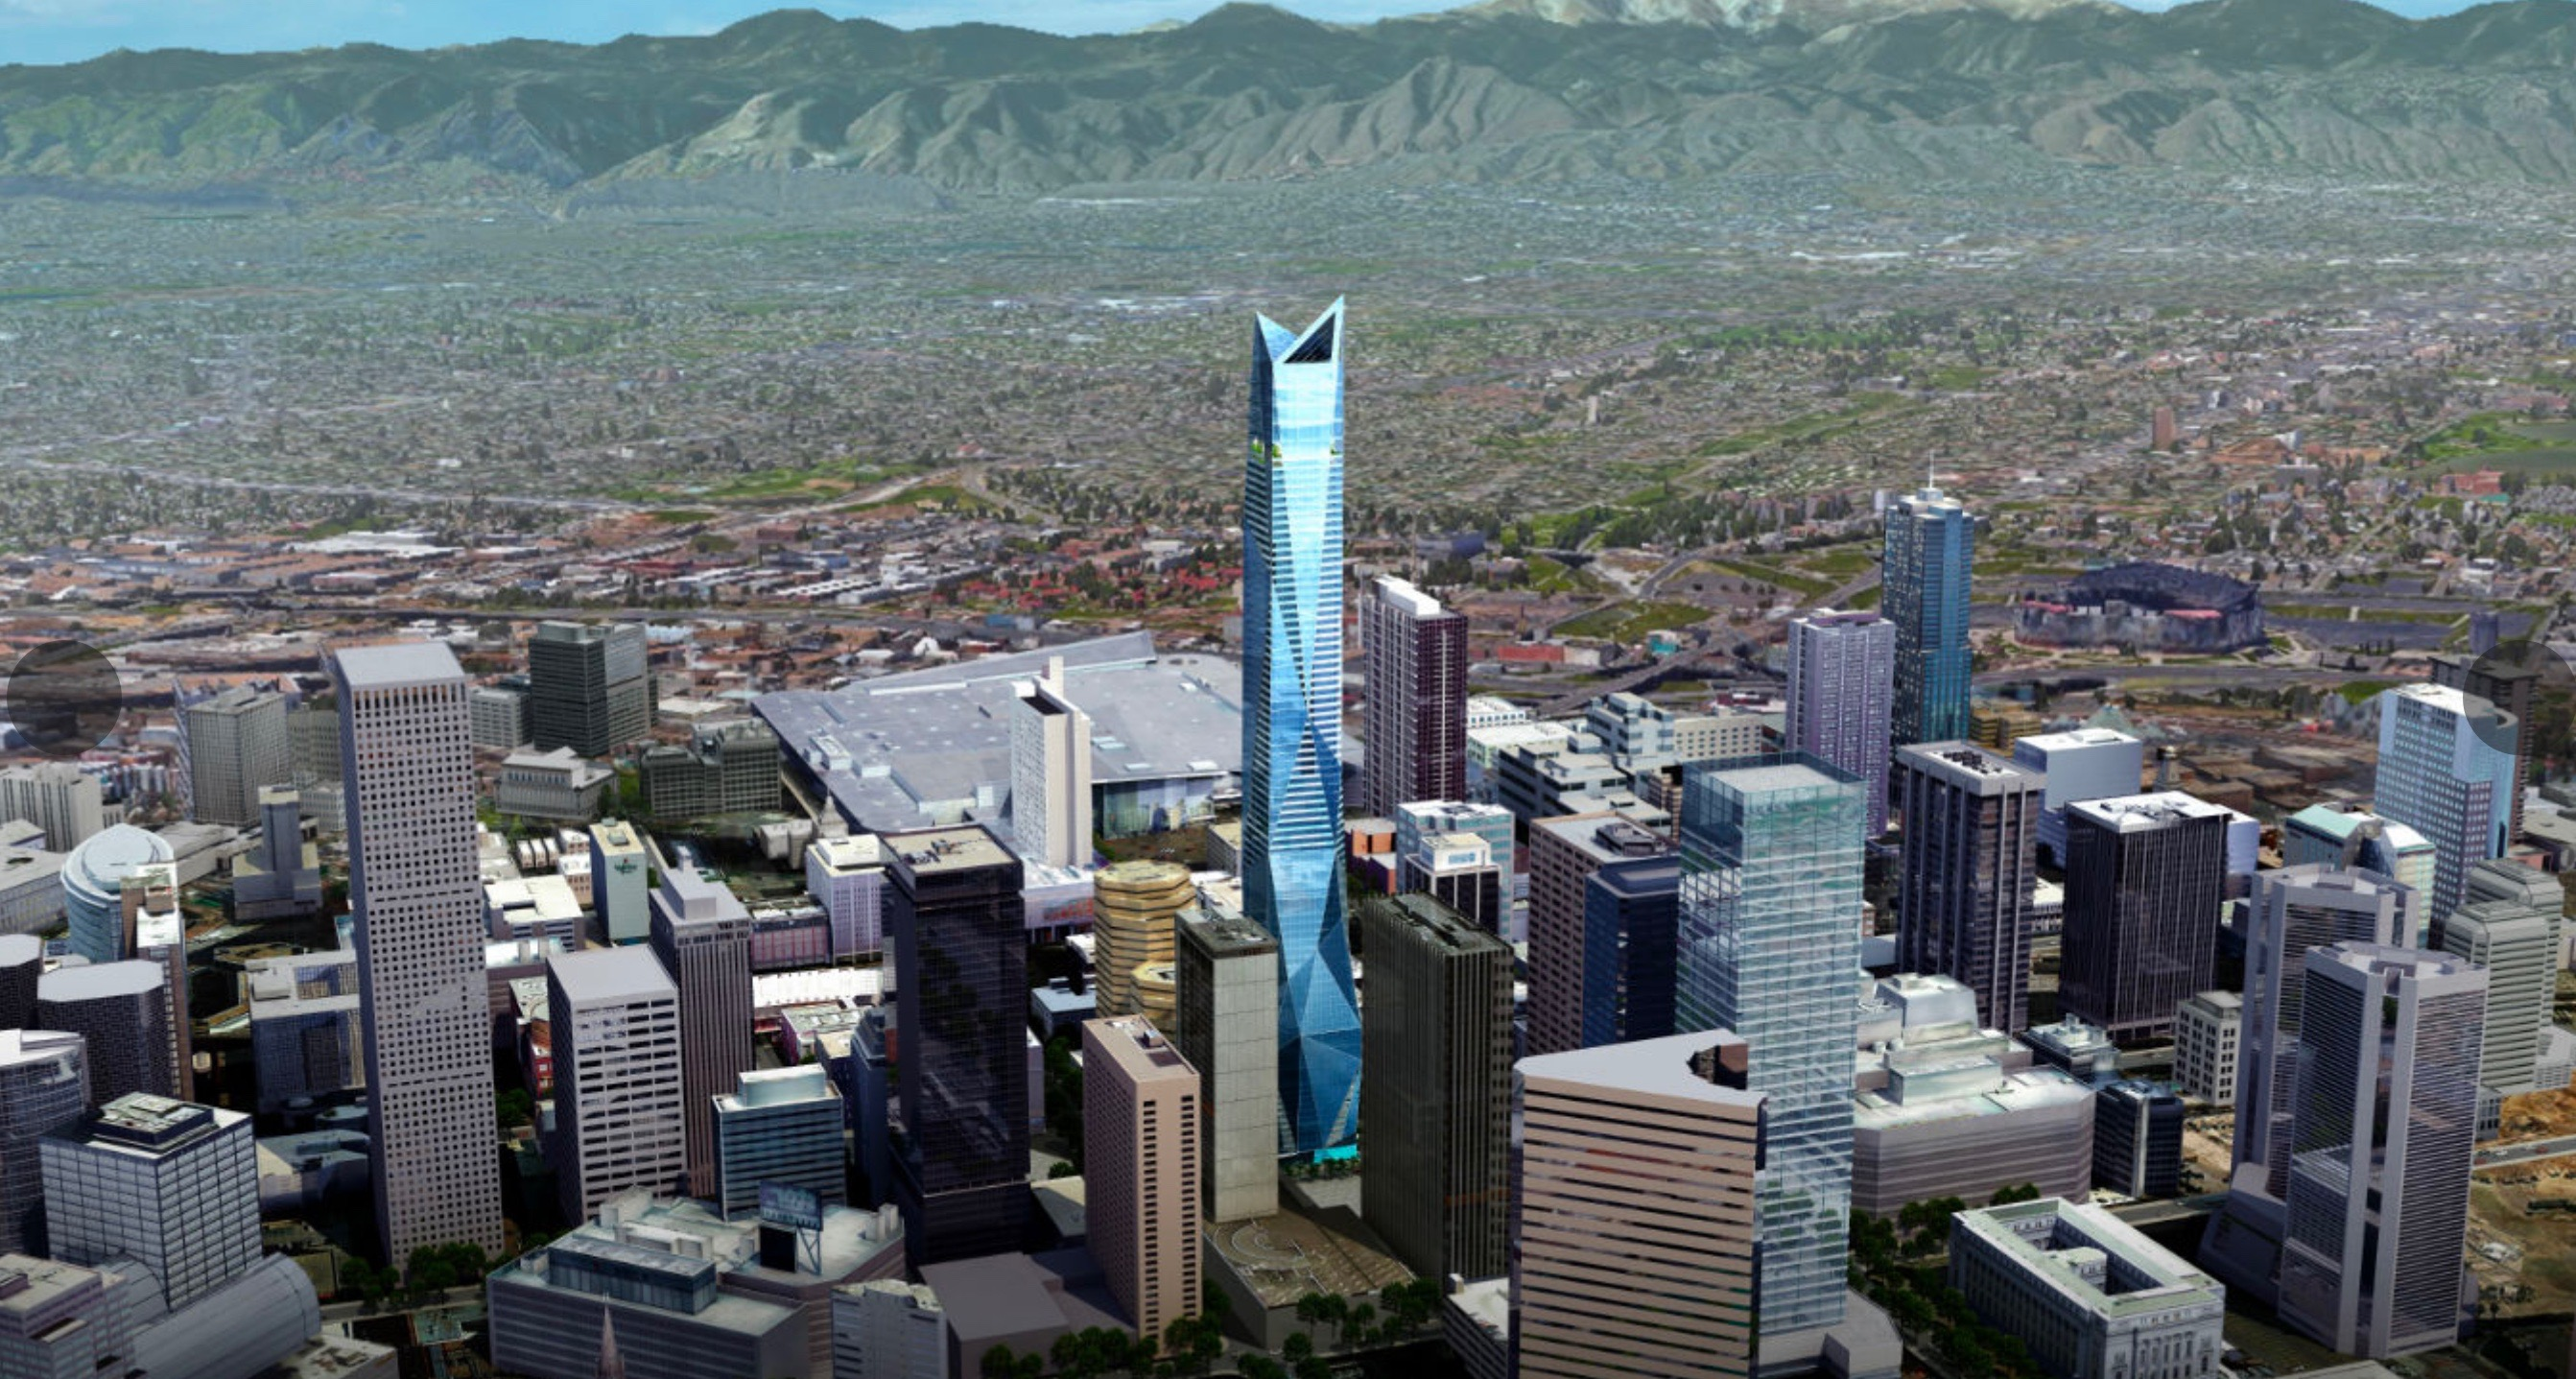 90-Story Skyscraper Planned For Denver